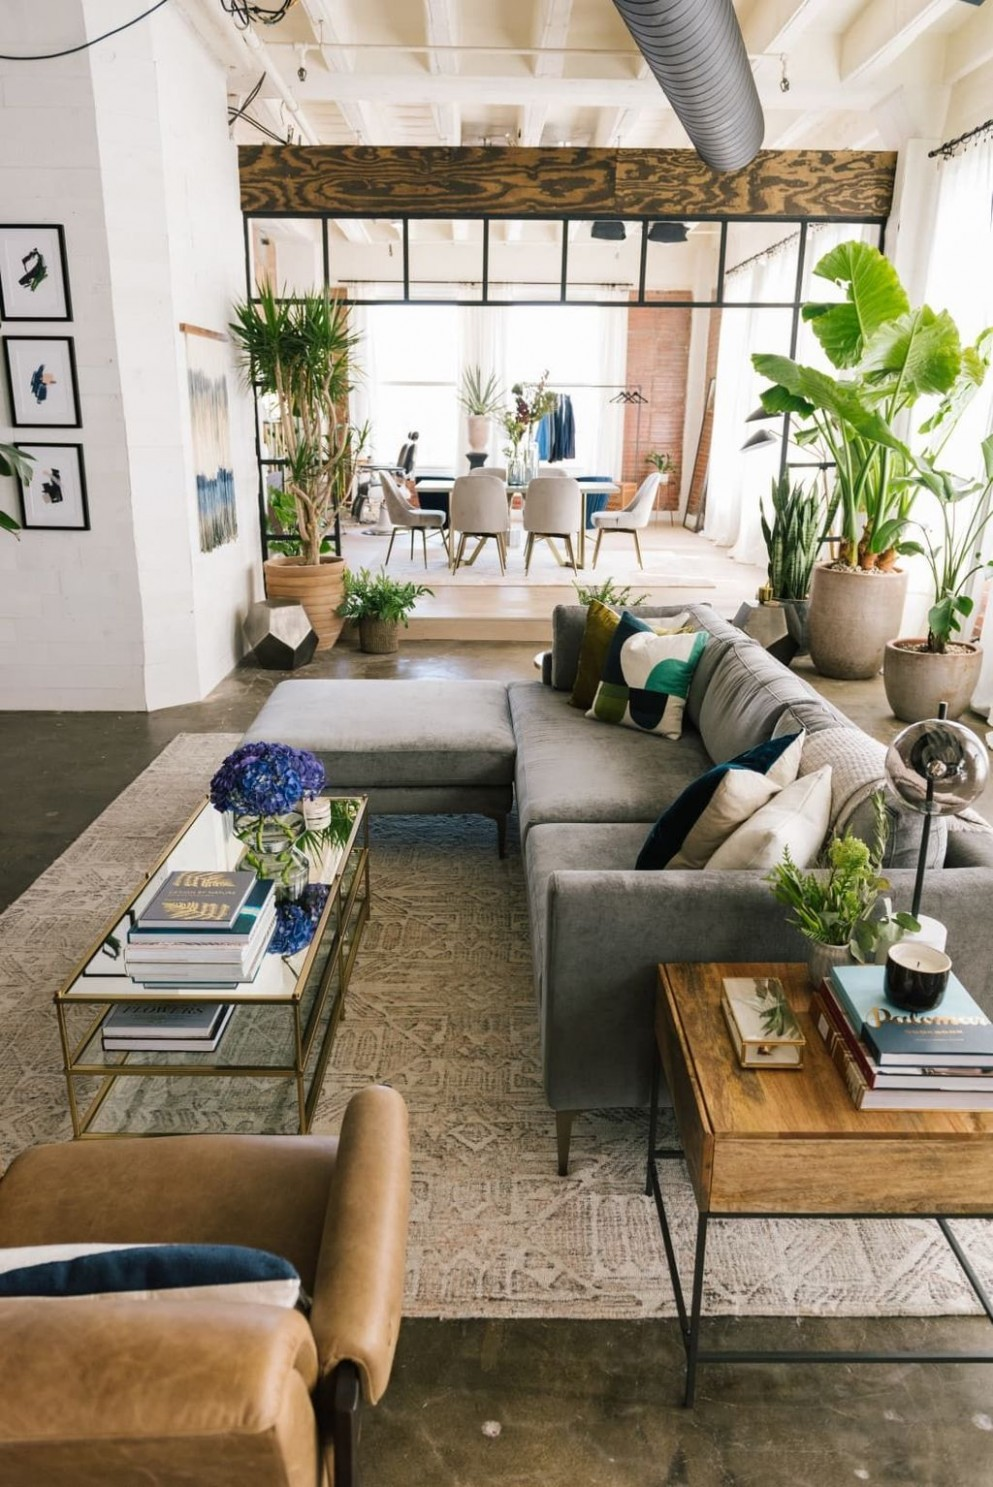 12 Stunning Loft Apartment Decorating Ideas You Should Try in 12  - Loft Apartment Decor Ideas